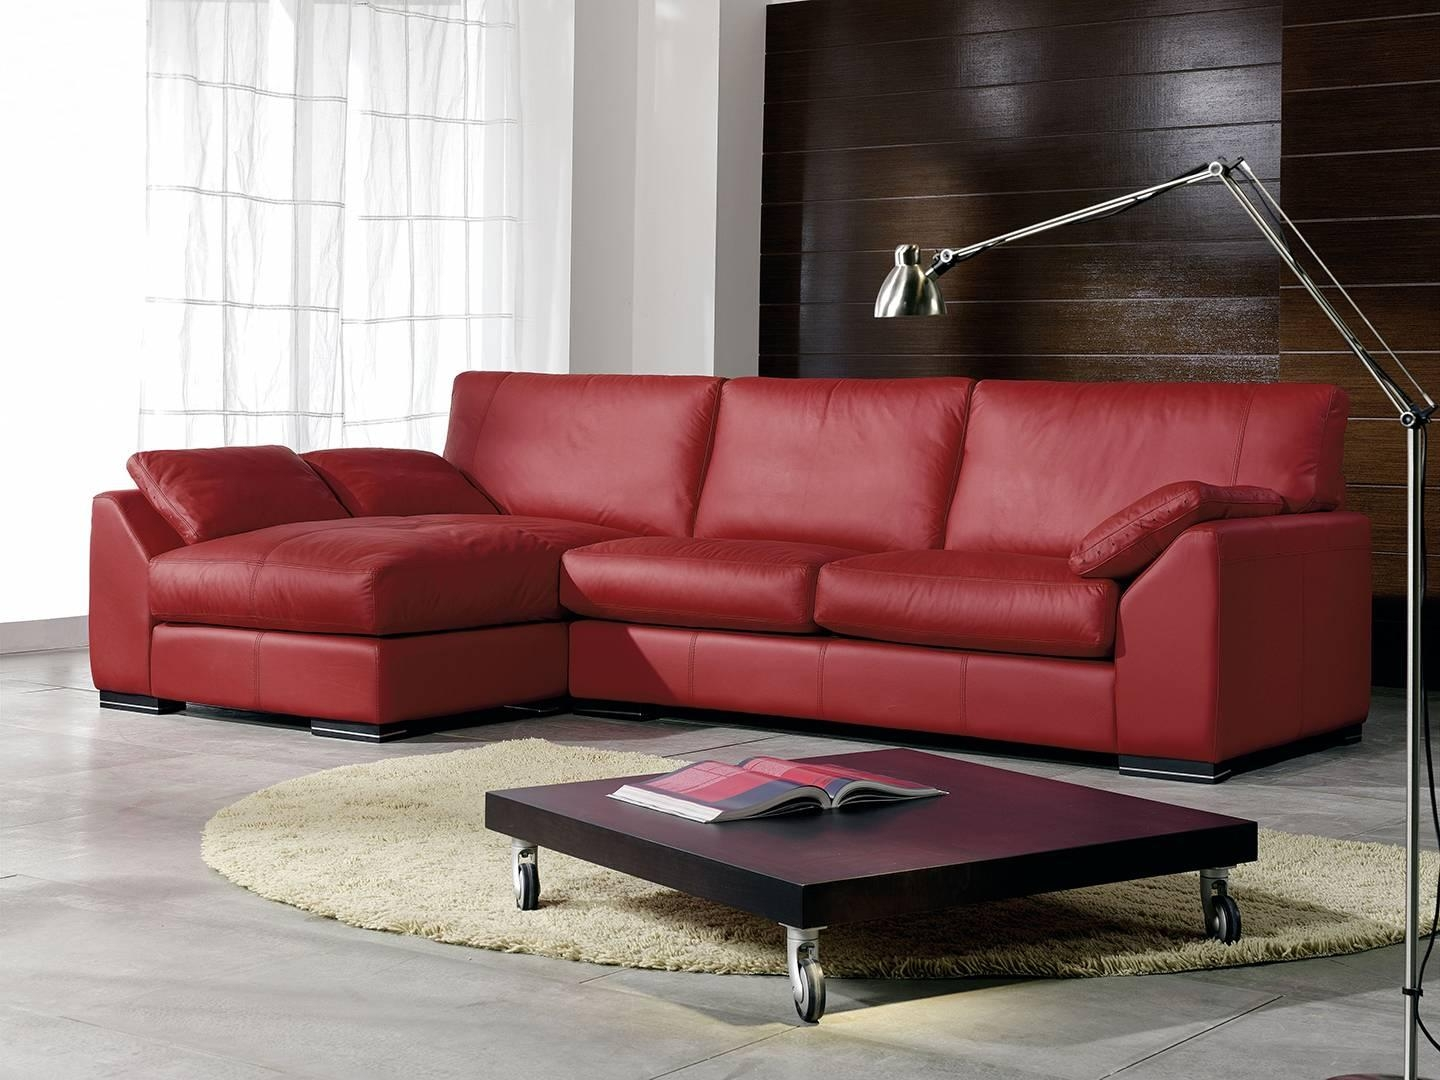 European Leather Sectional Sofas – Video And Photos Inside European Leather Sofas (Image 6 of 21)